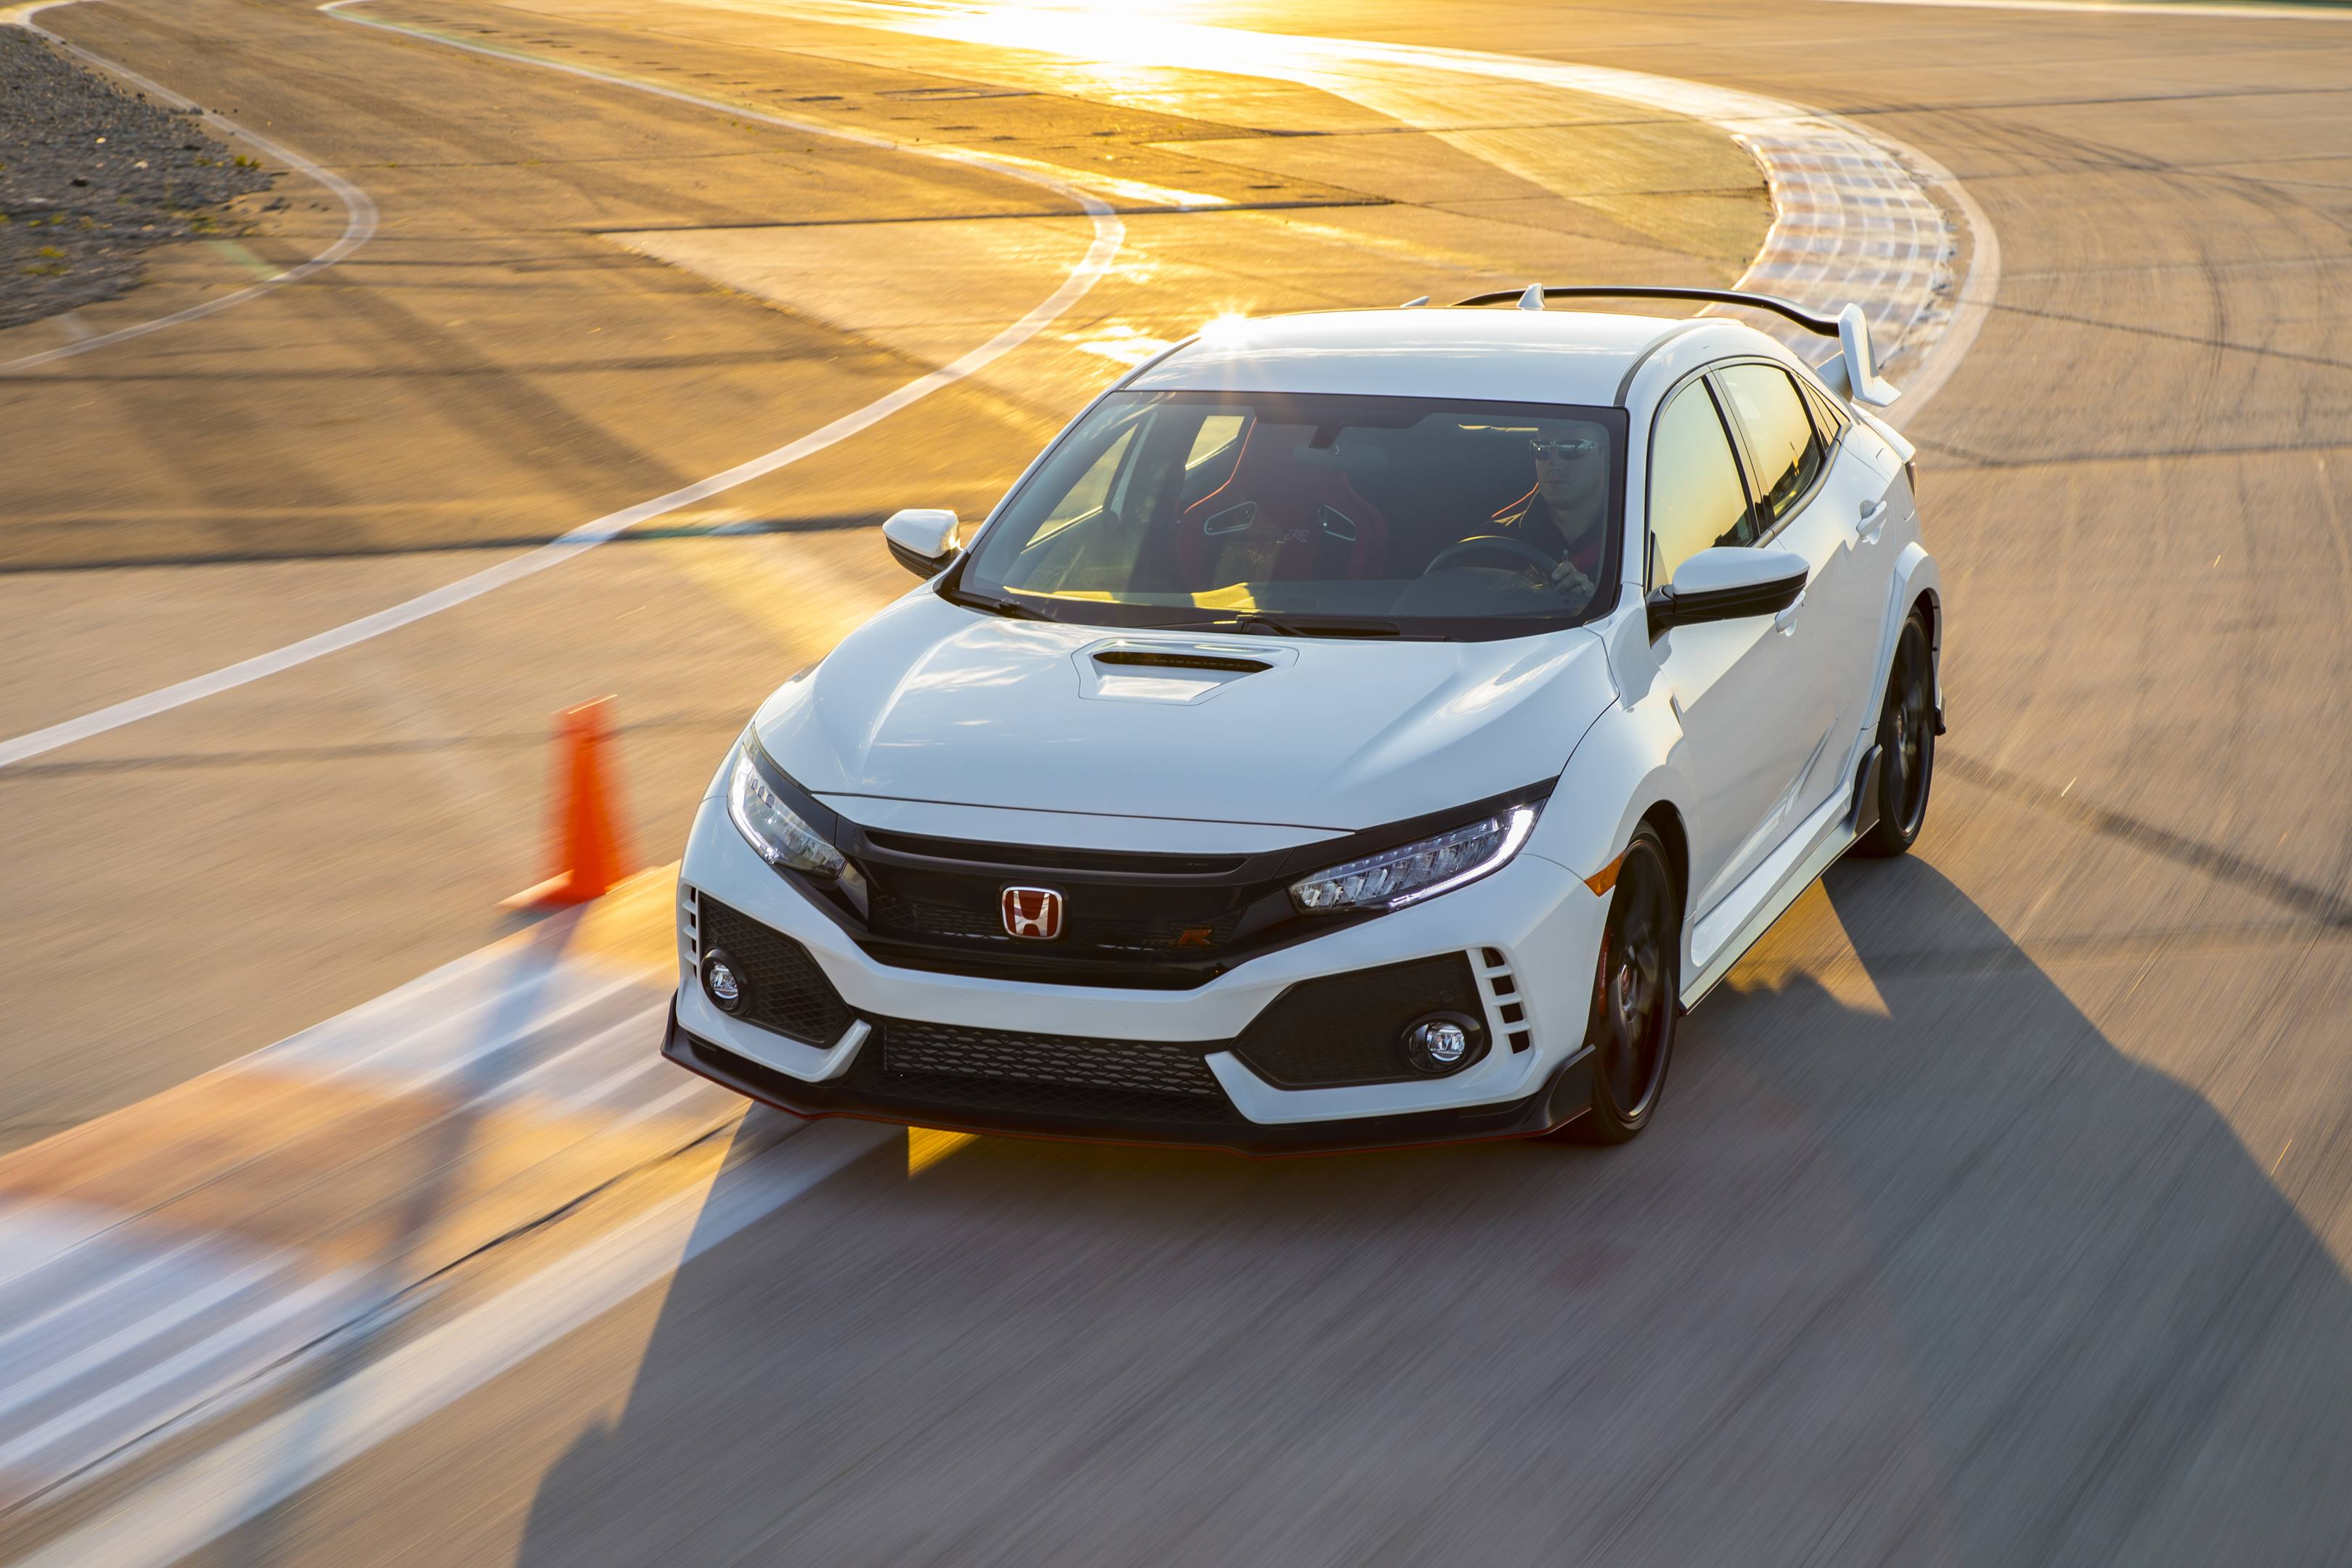 2017 Honda Civic Type R banking right